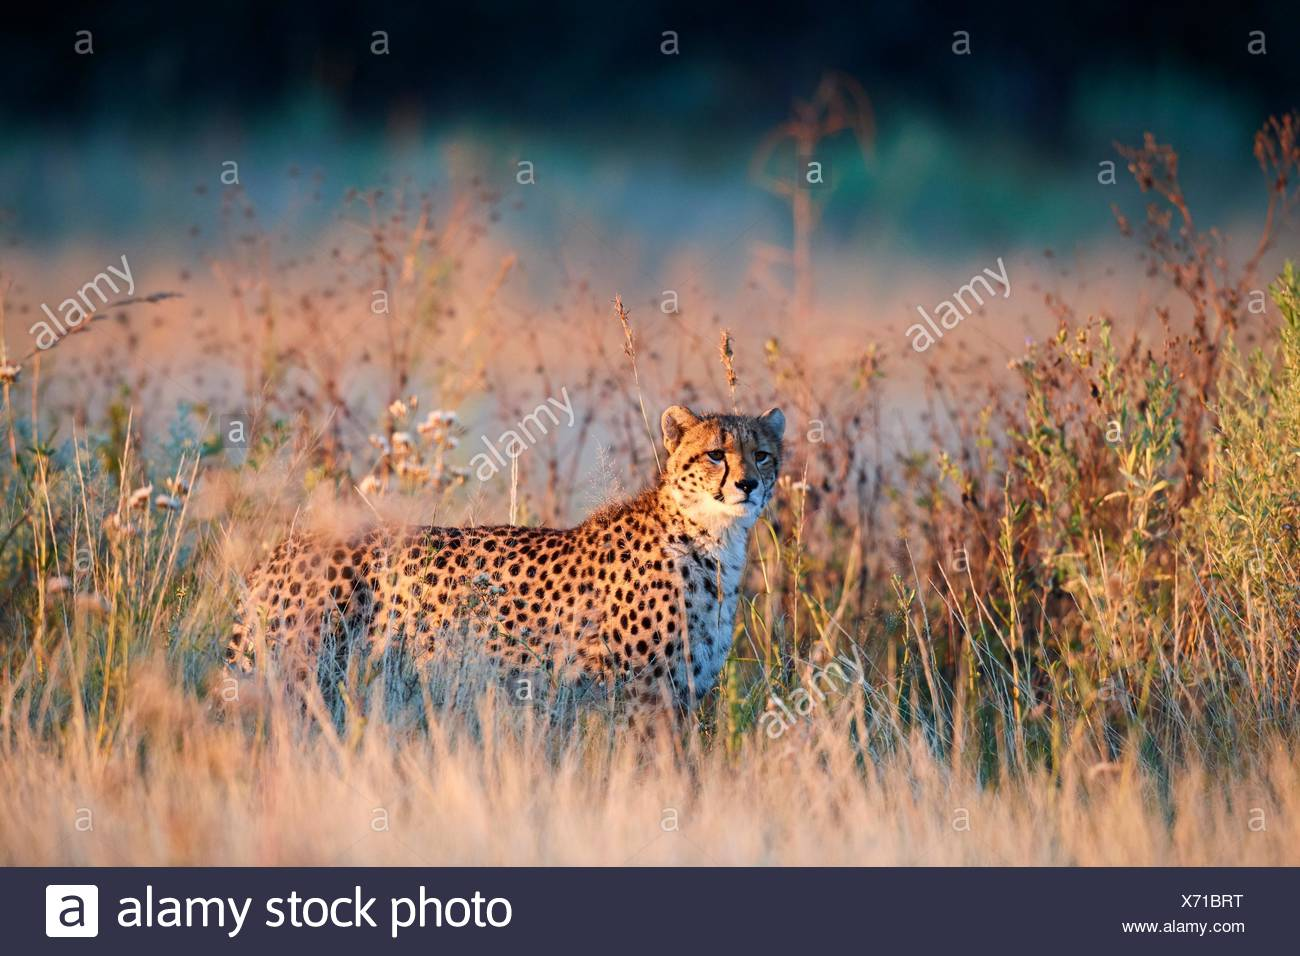 Cheetah male (Acinonyx jubatus) in morning light. Moremi National Park, Okavango delta, Botswana, Southern Africa. Stock Photo